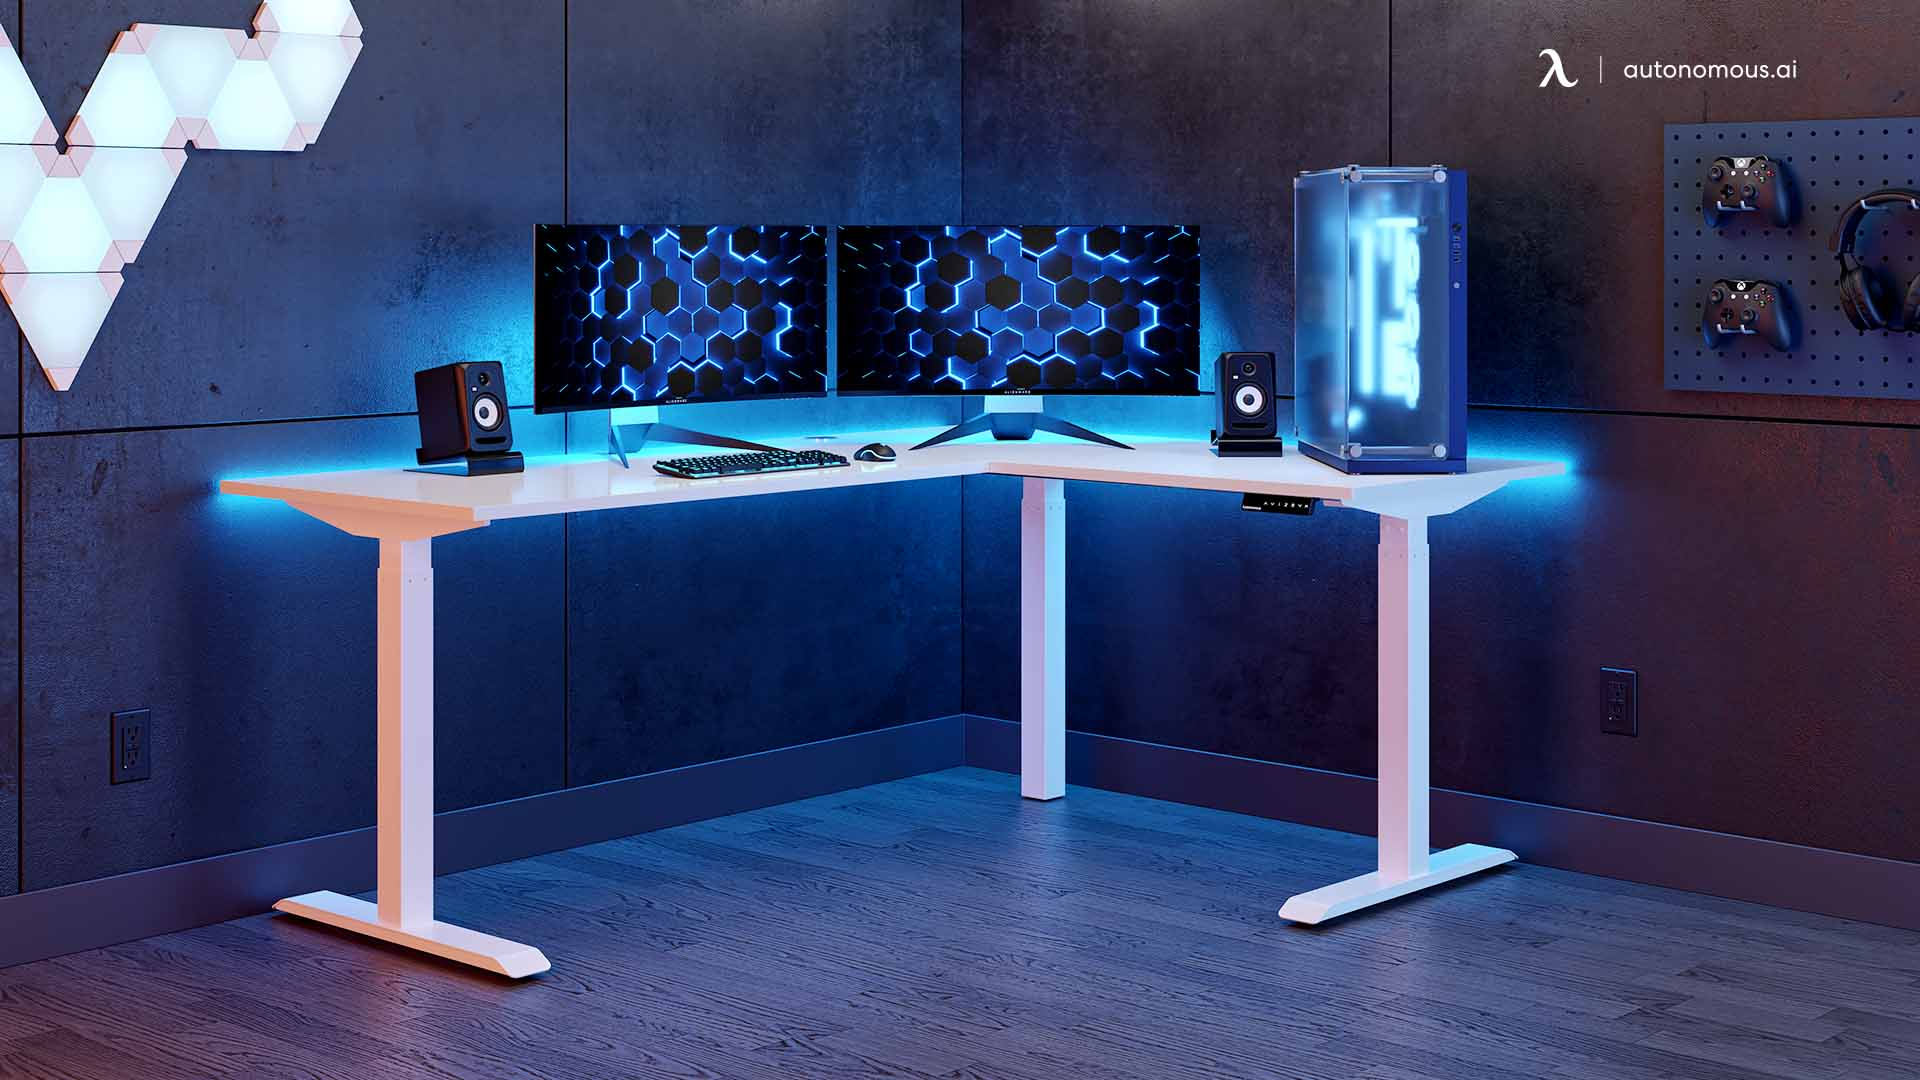 Why would you choose a standing desk